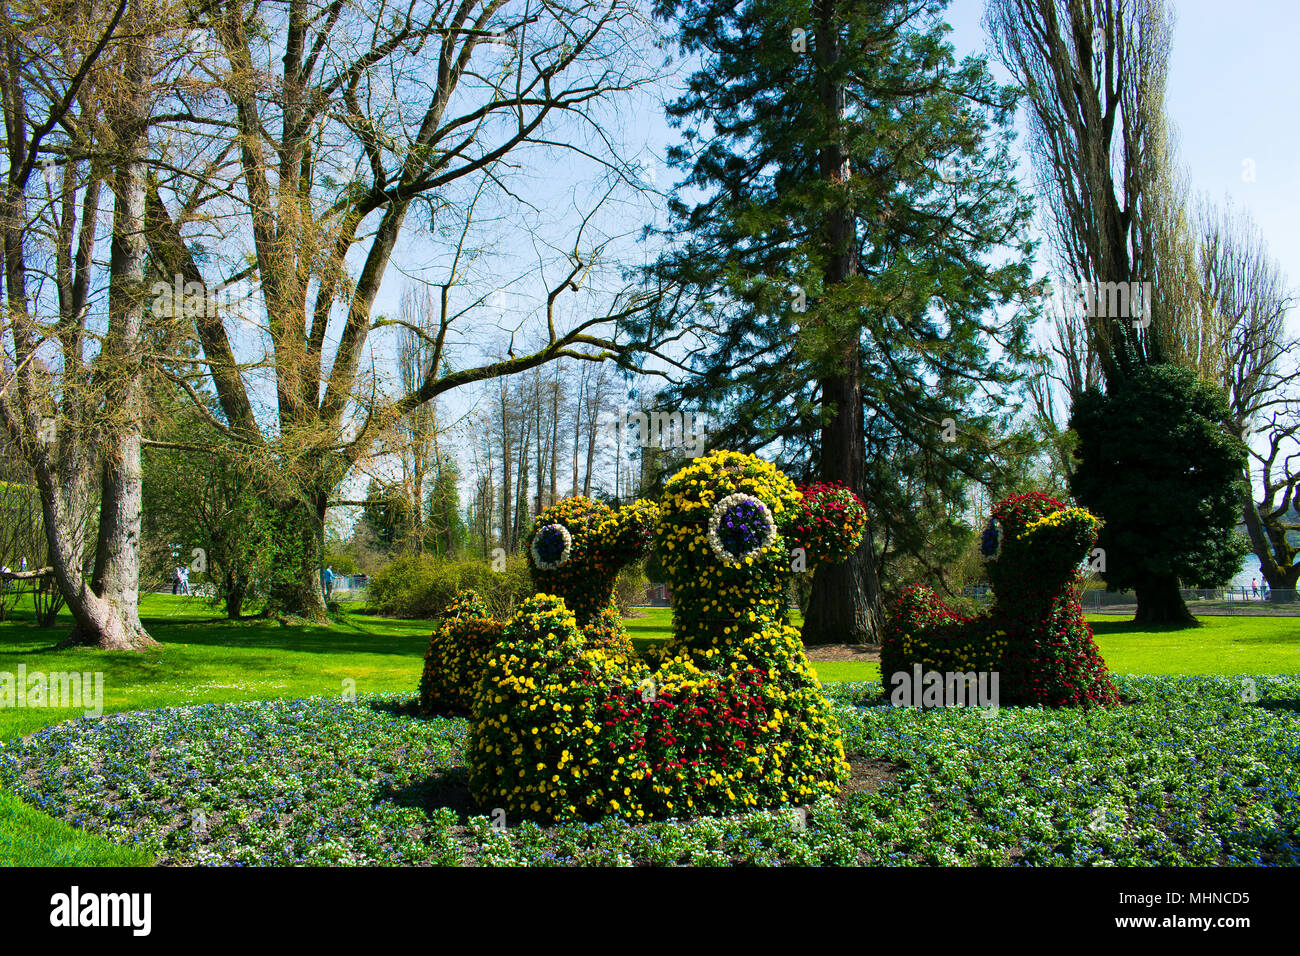 Floral figures of ducks on the island of Mainau in Germany. - Stock Image